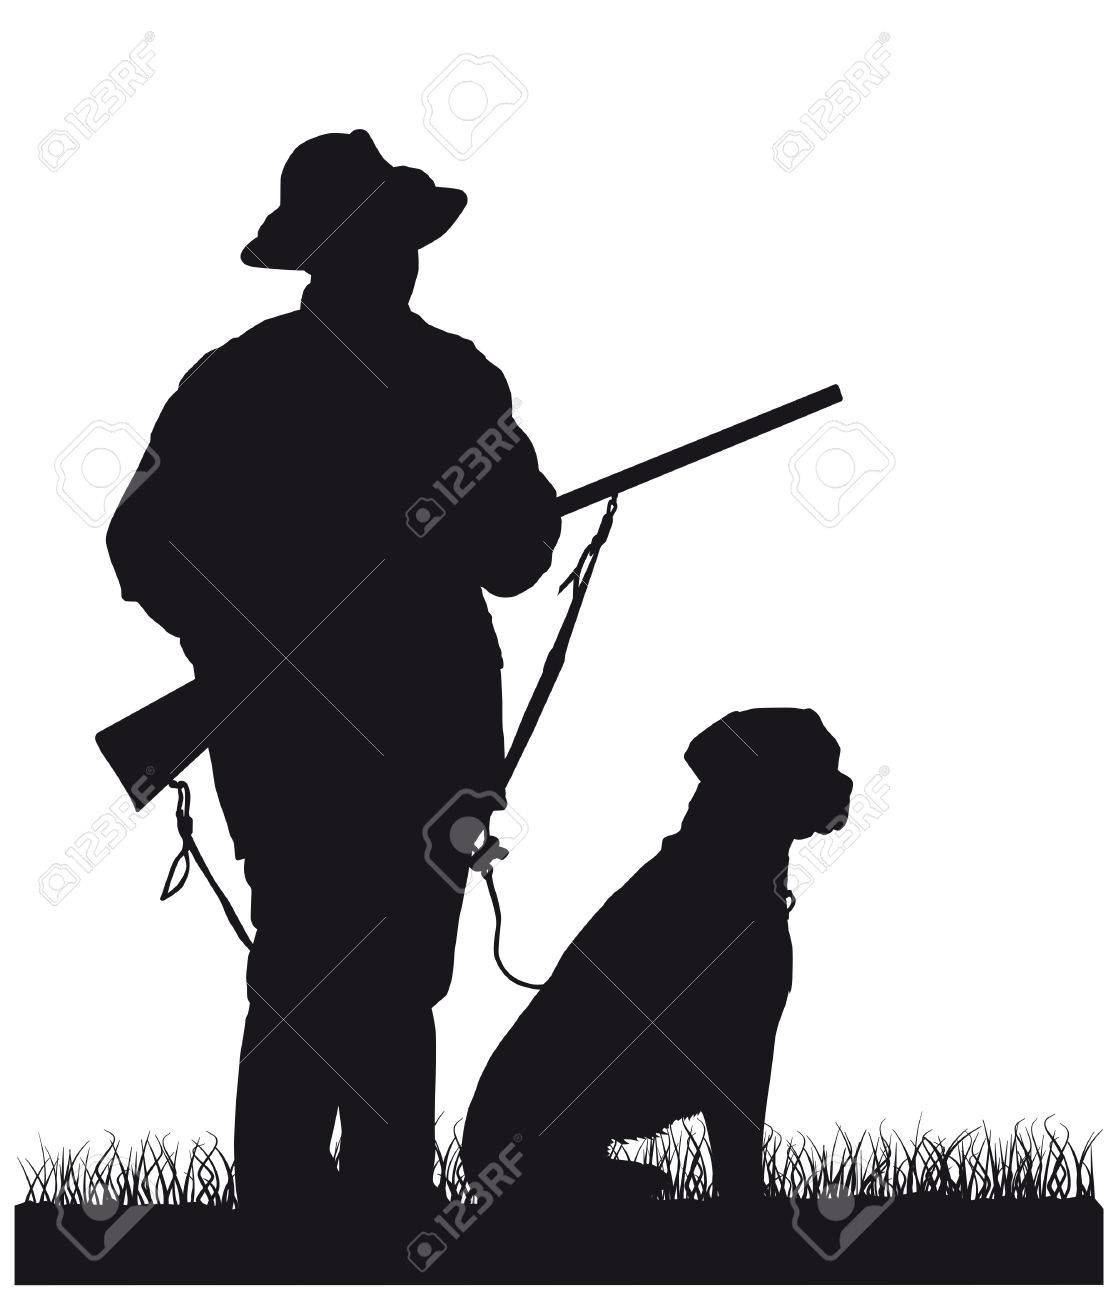 hunter with dog, silhouette - 54115755